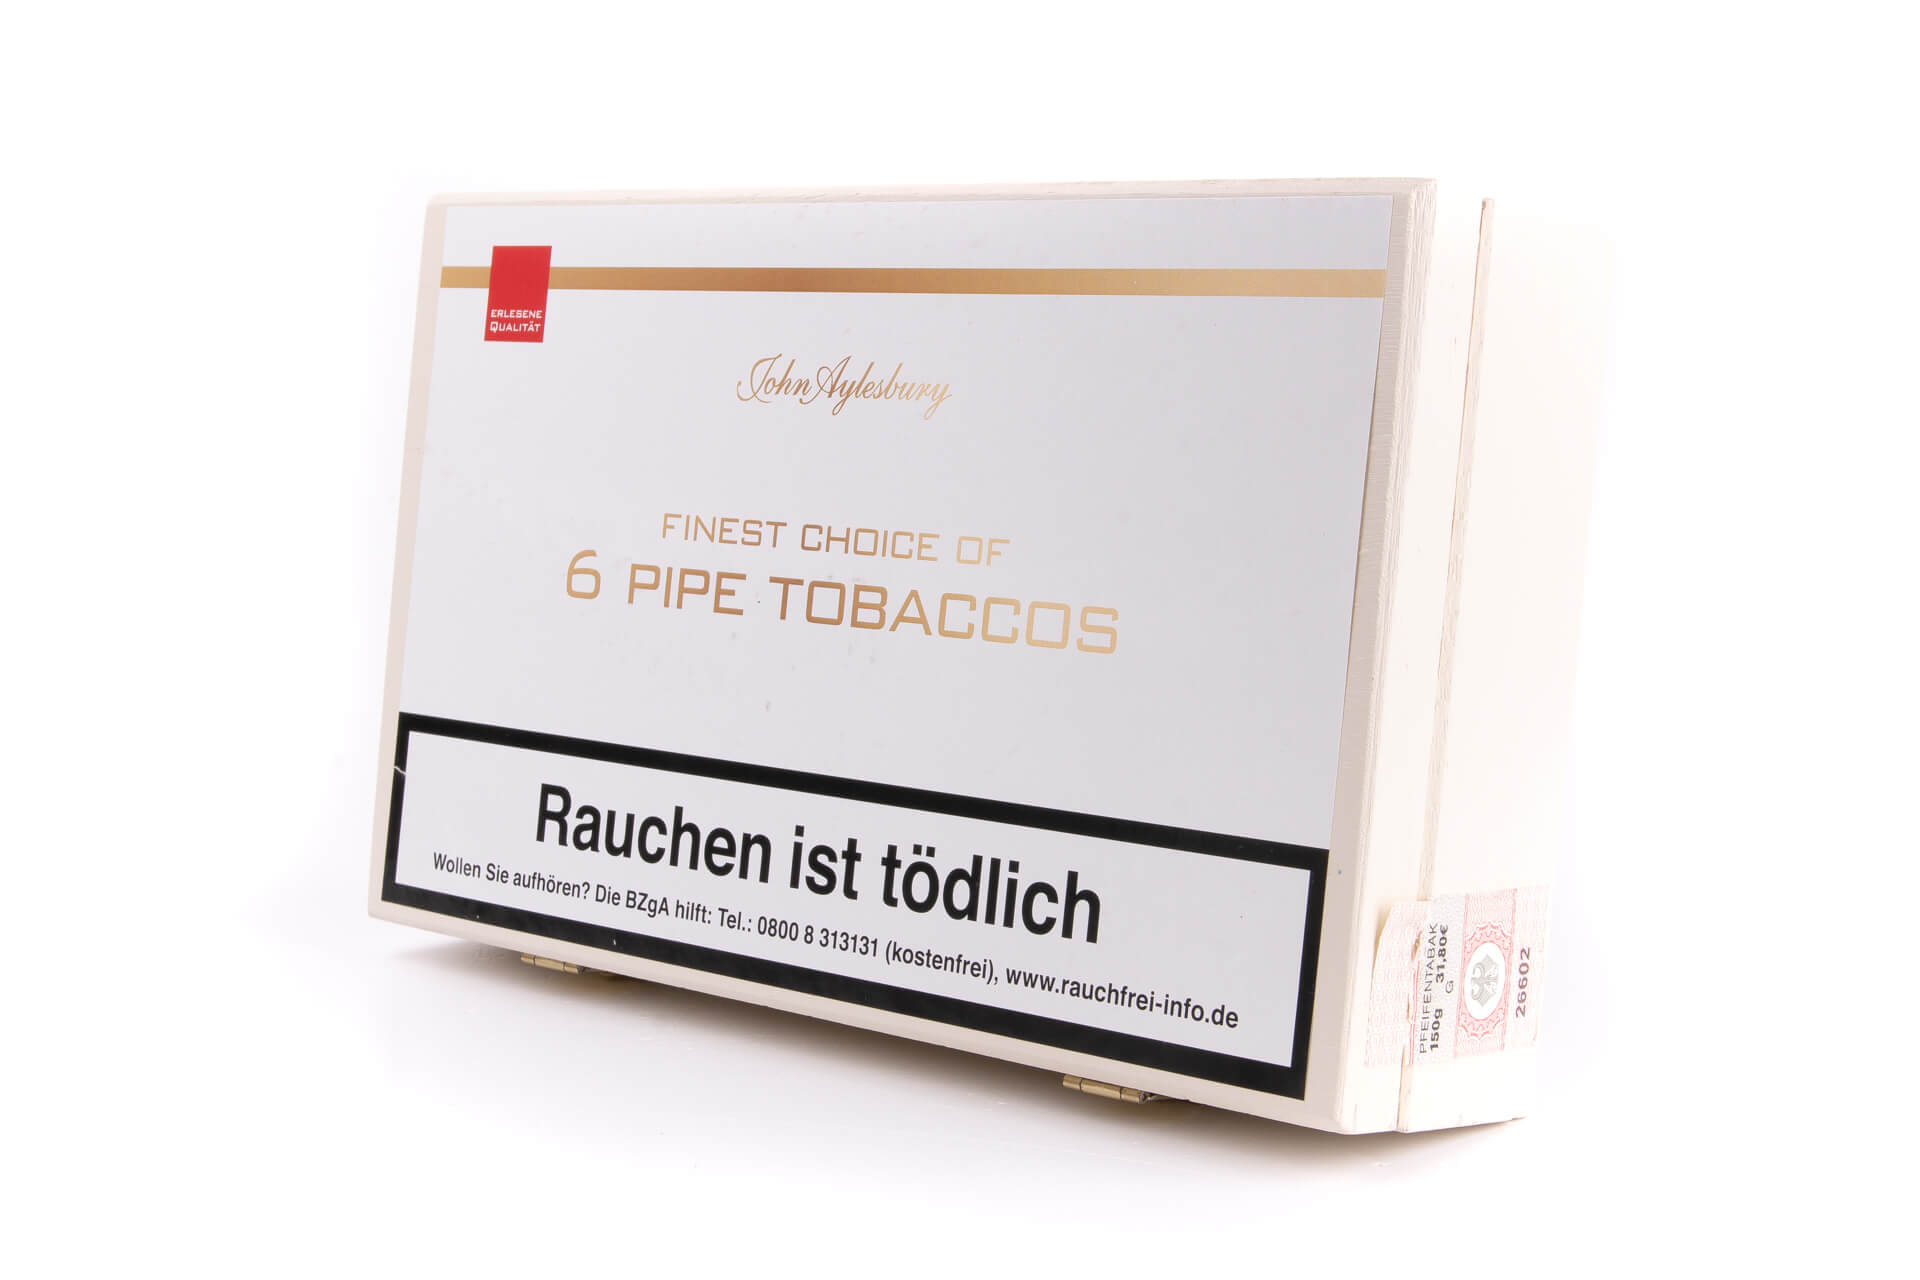 Finest Choice of 6 Pipe Tabacco